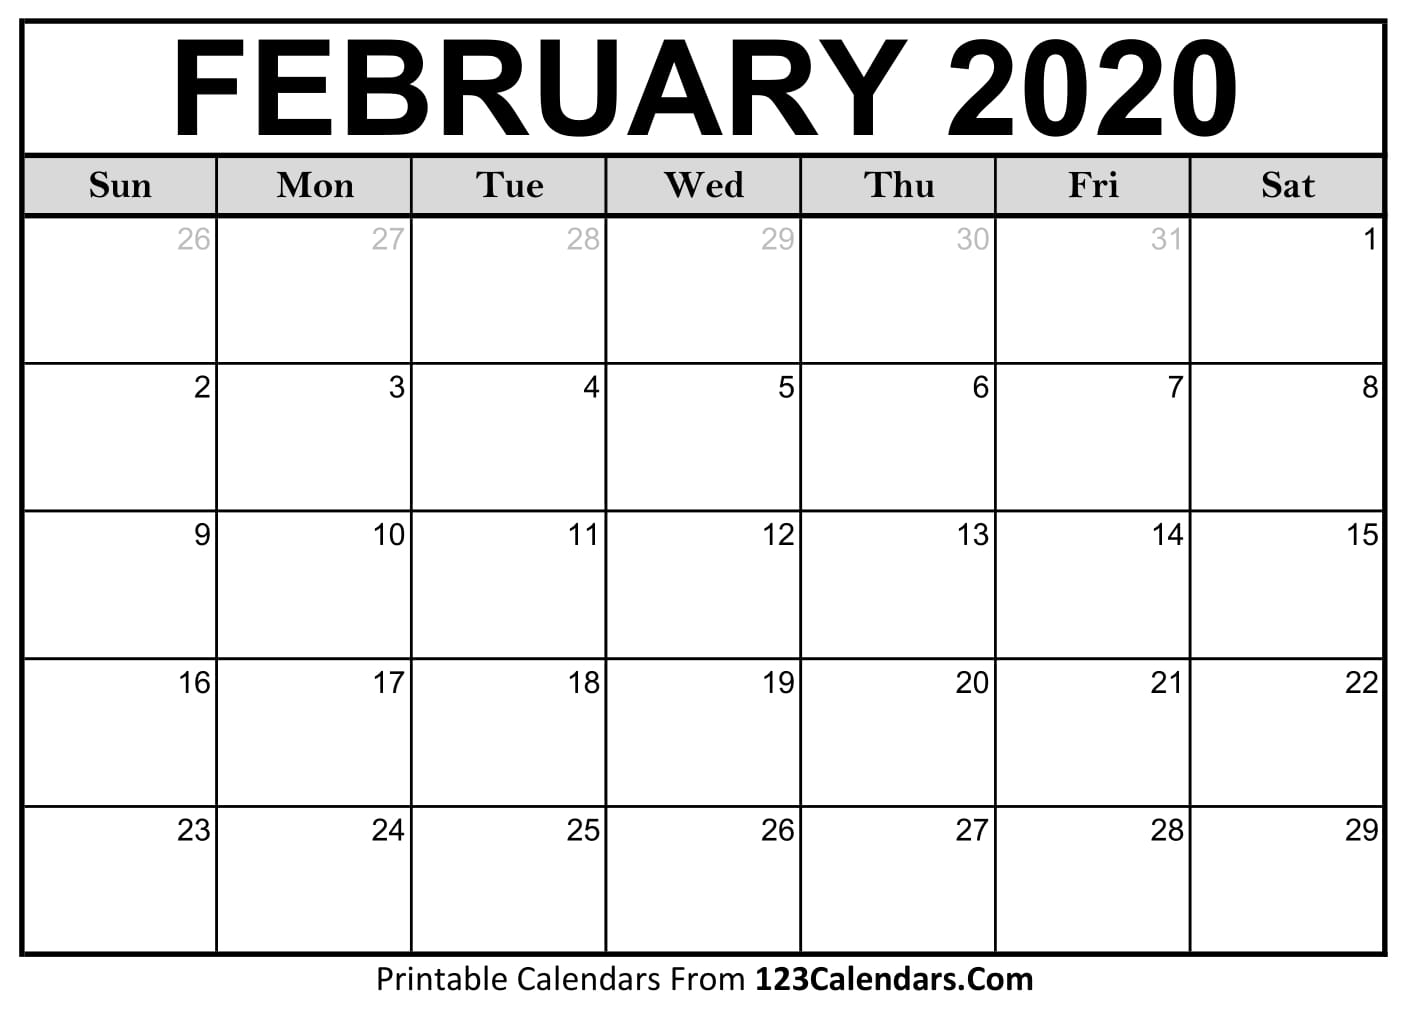 February 2020 Printable Calendar | 123Calendars throughout February 2020 Calender That I Can Fill In